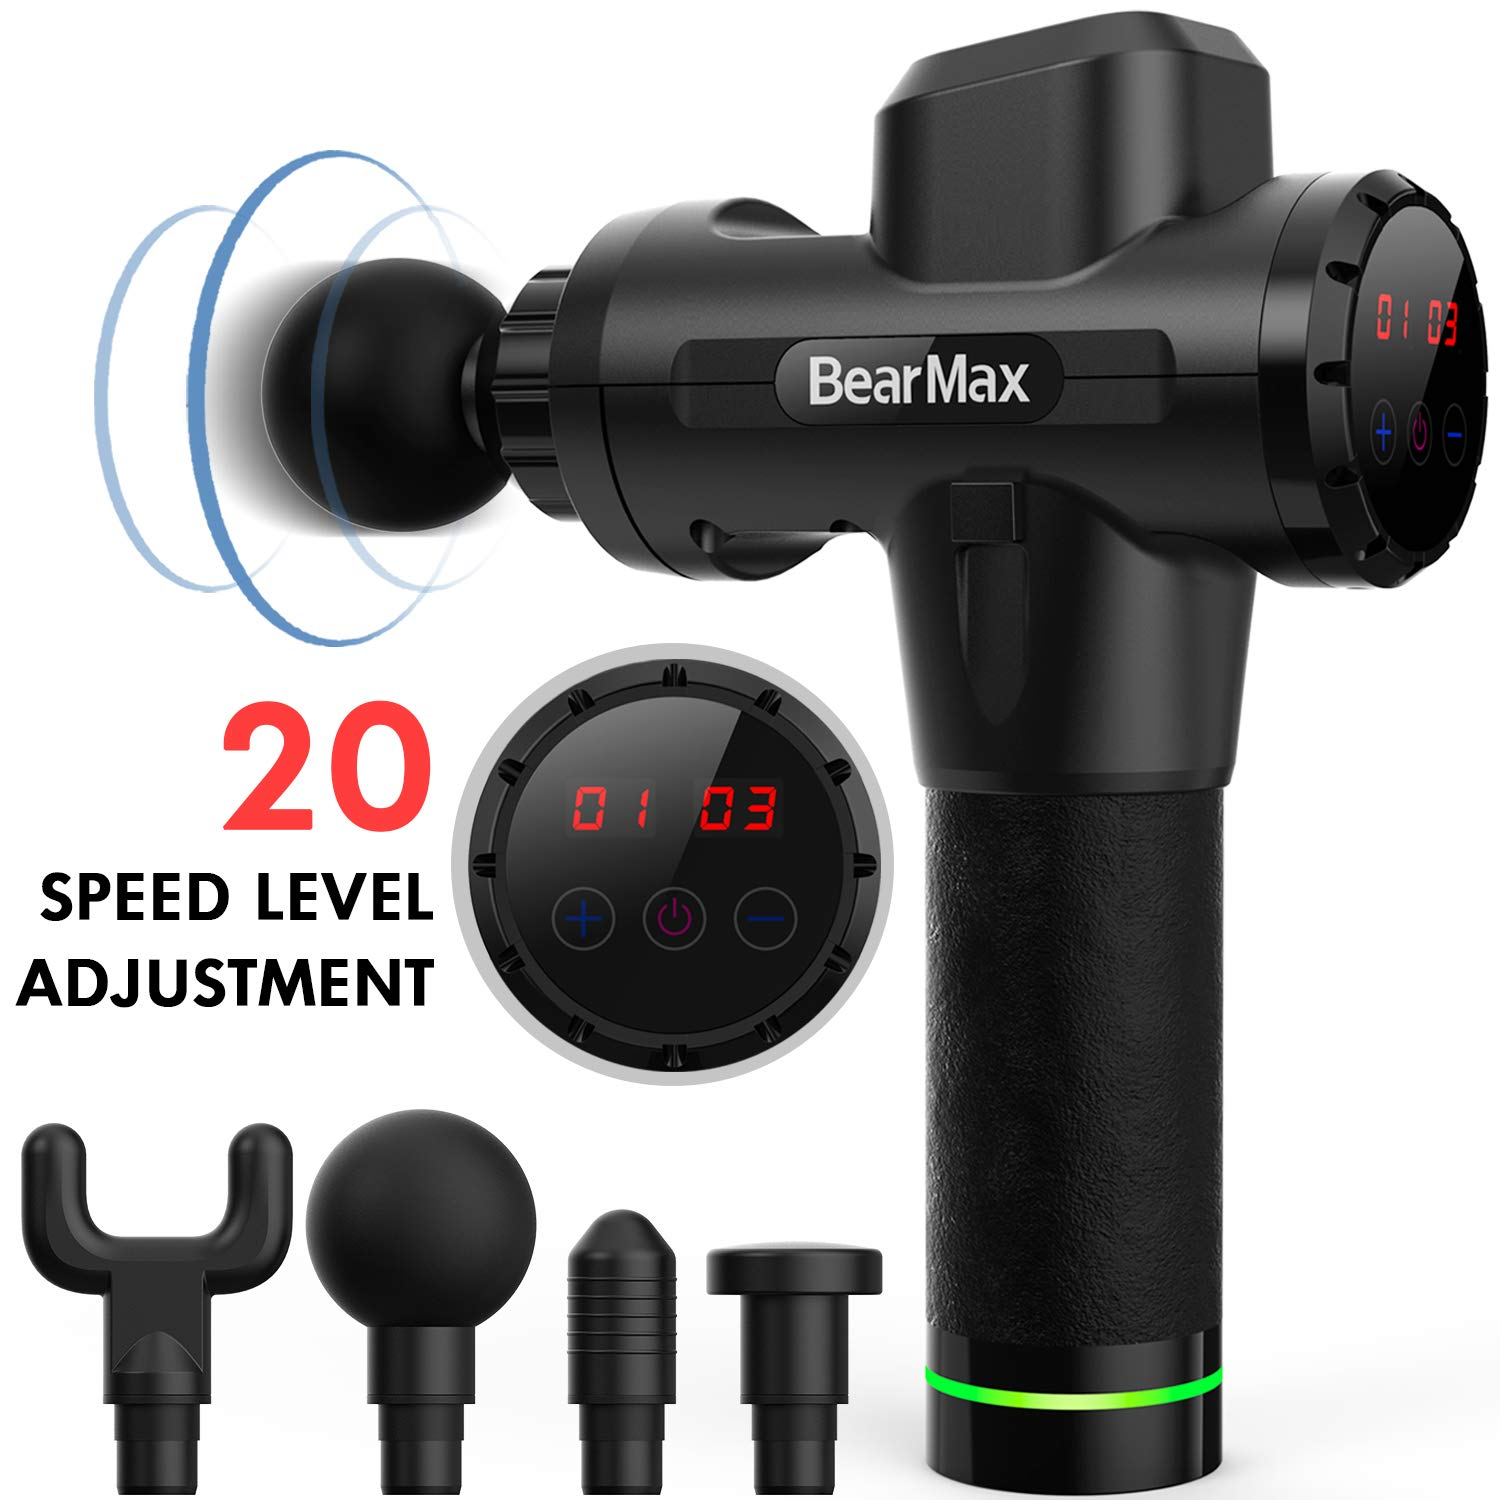 Bearmax Massage Gun New Upgraded Muscle Massager Ultra-Quiet 20 Speeds Level Deep Tissue Massager for Muscle Tension Relief Black